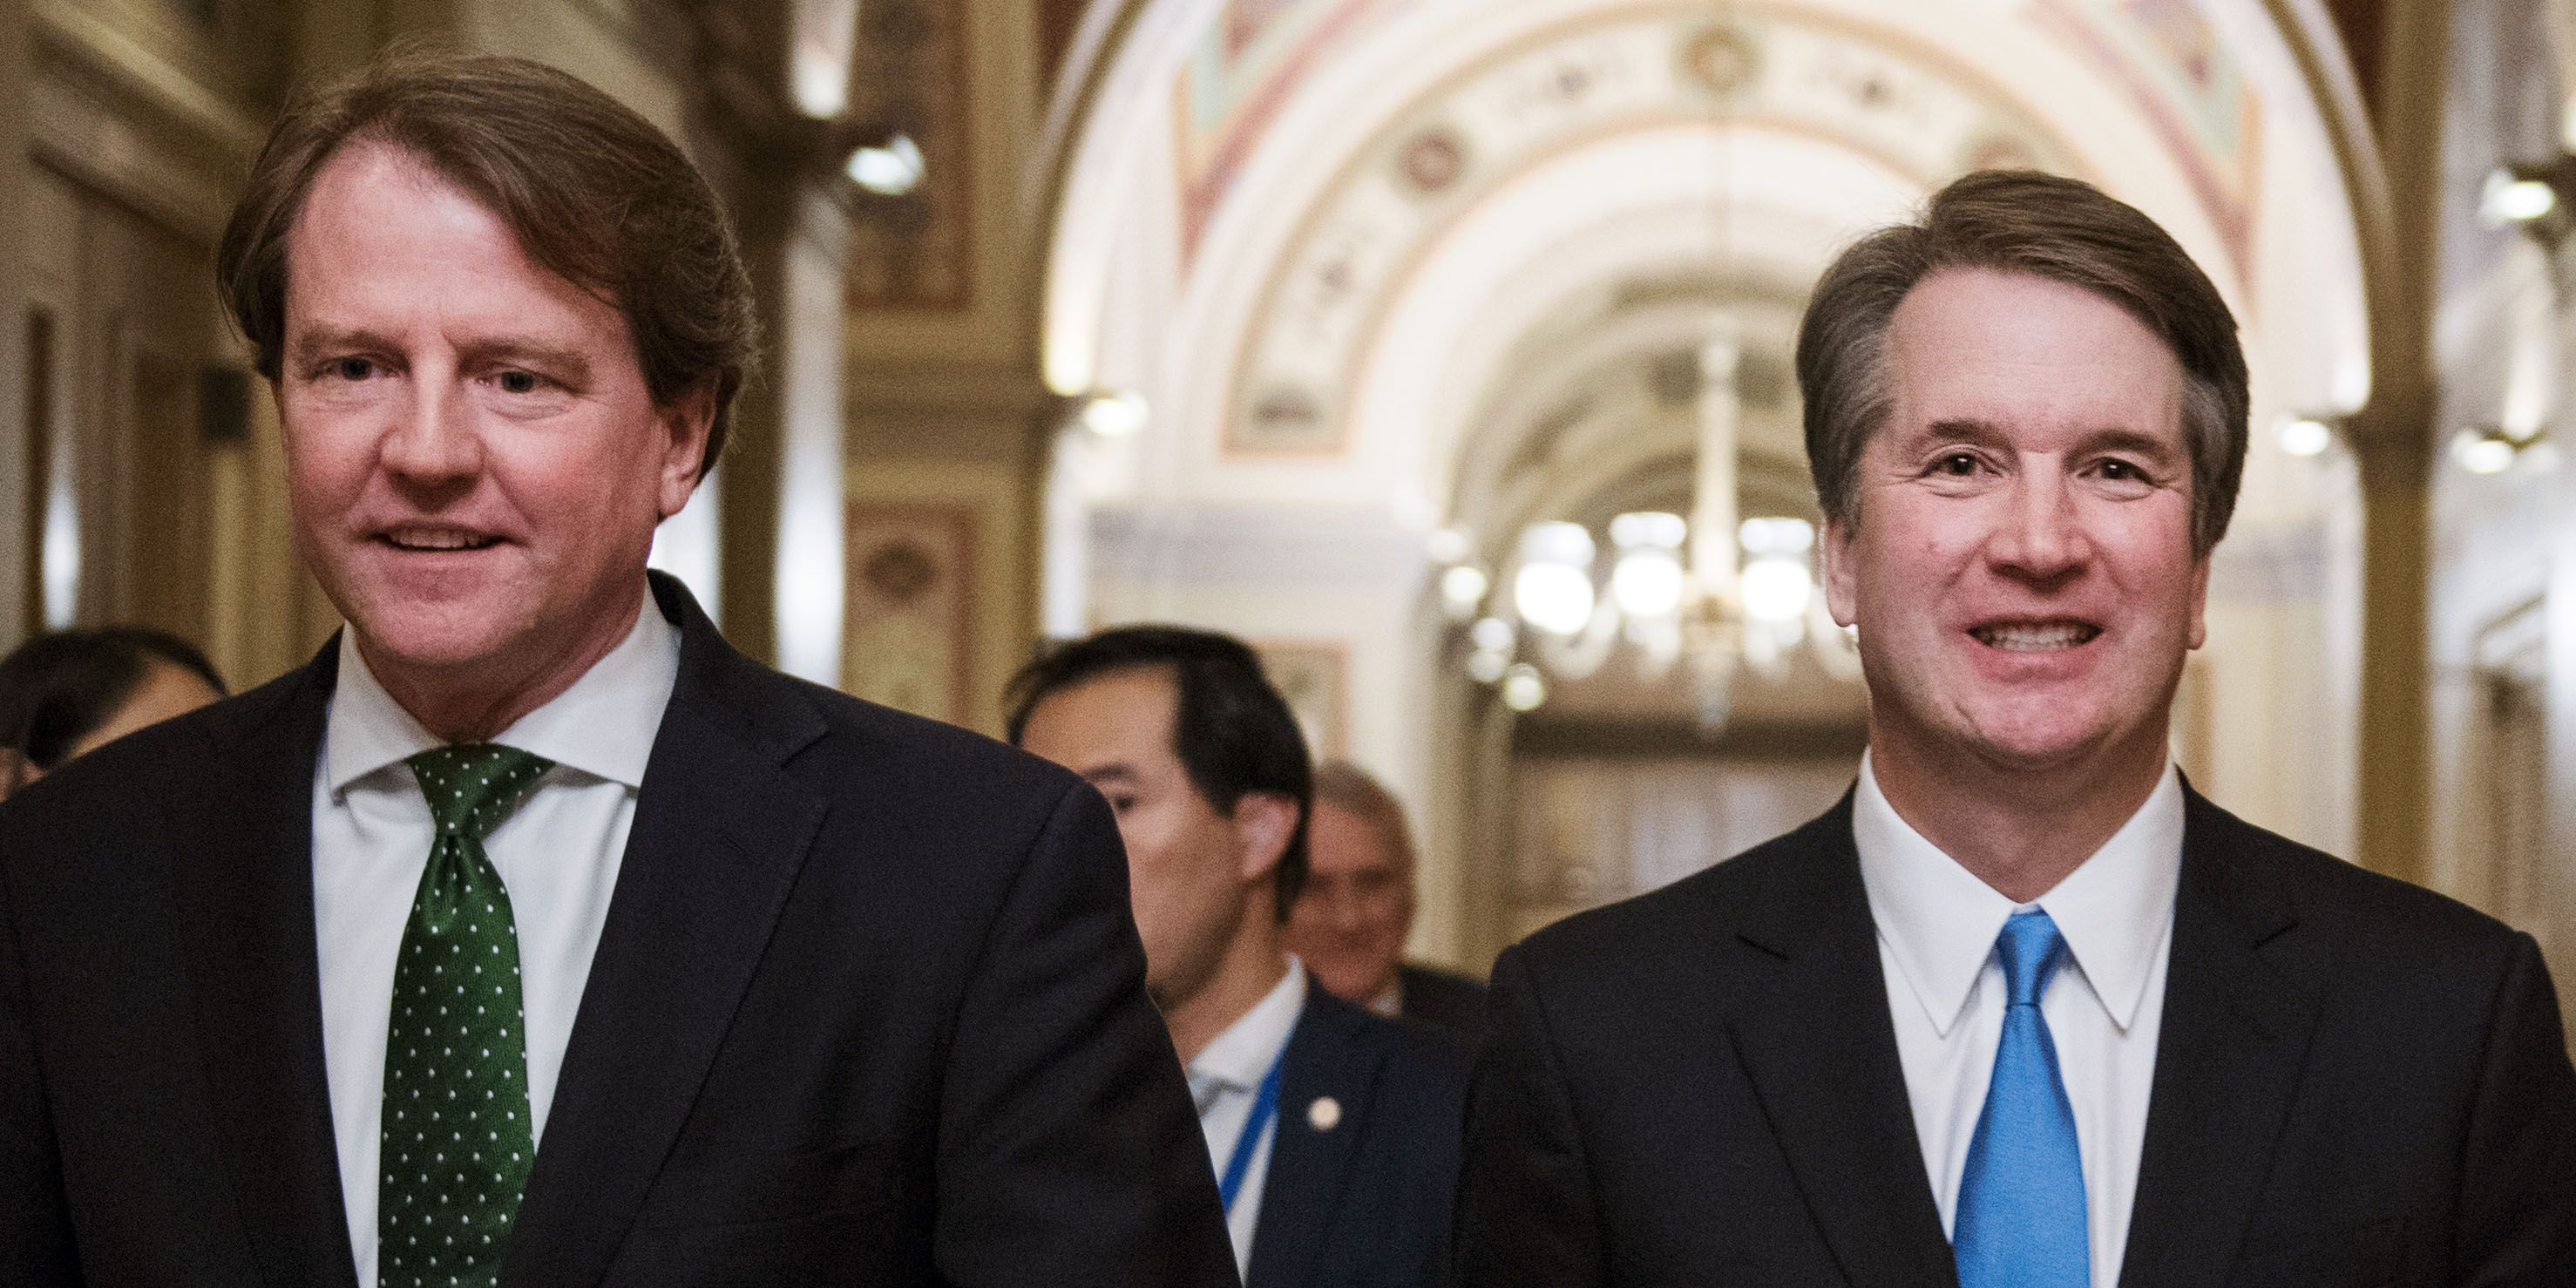 Voter Suppression Is Deeply Embedded in the Republican Party. Brett Kavanaugh Helped Put It There.